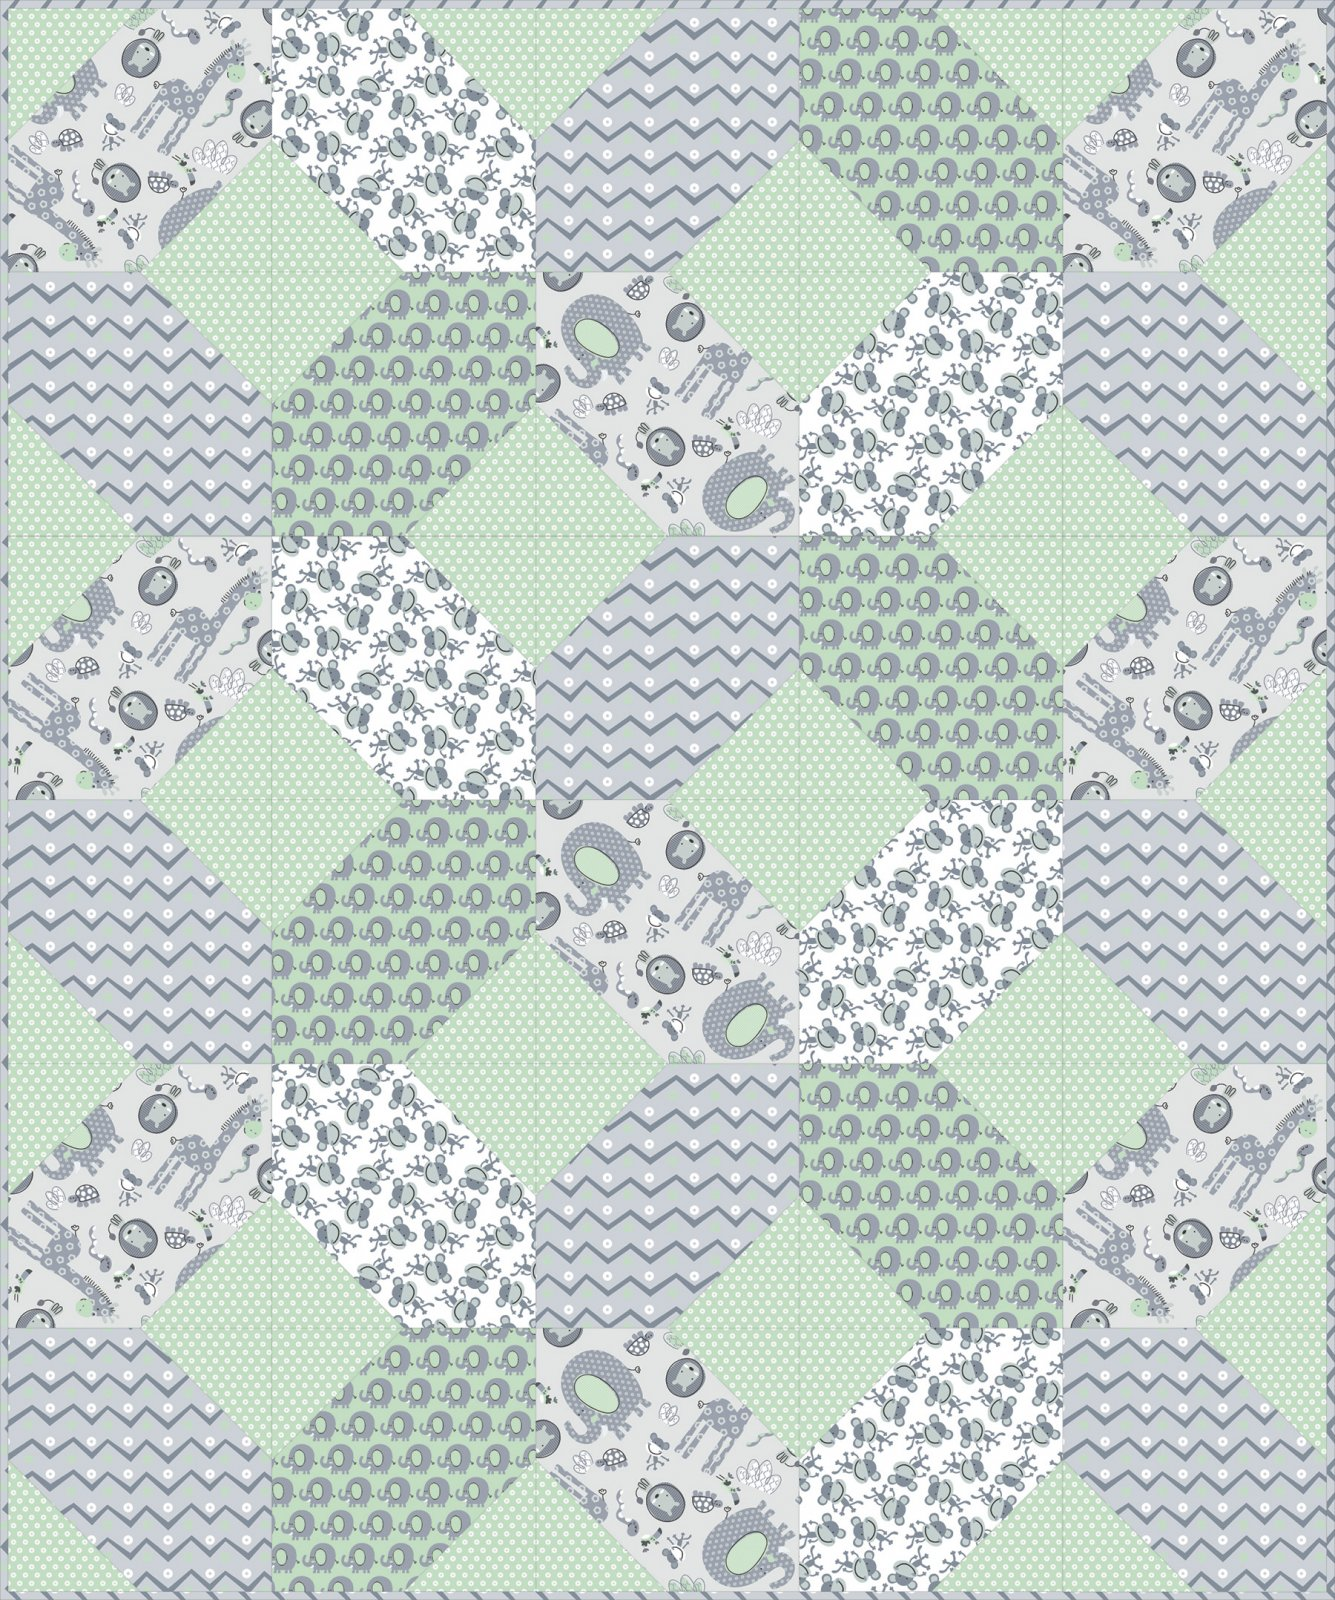 Canadian Quilt Shop Offering Premium Quilt Fabrics By The